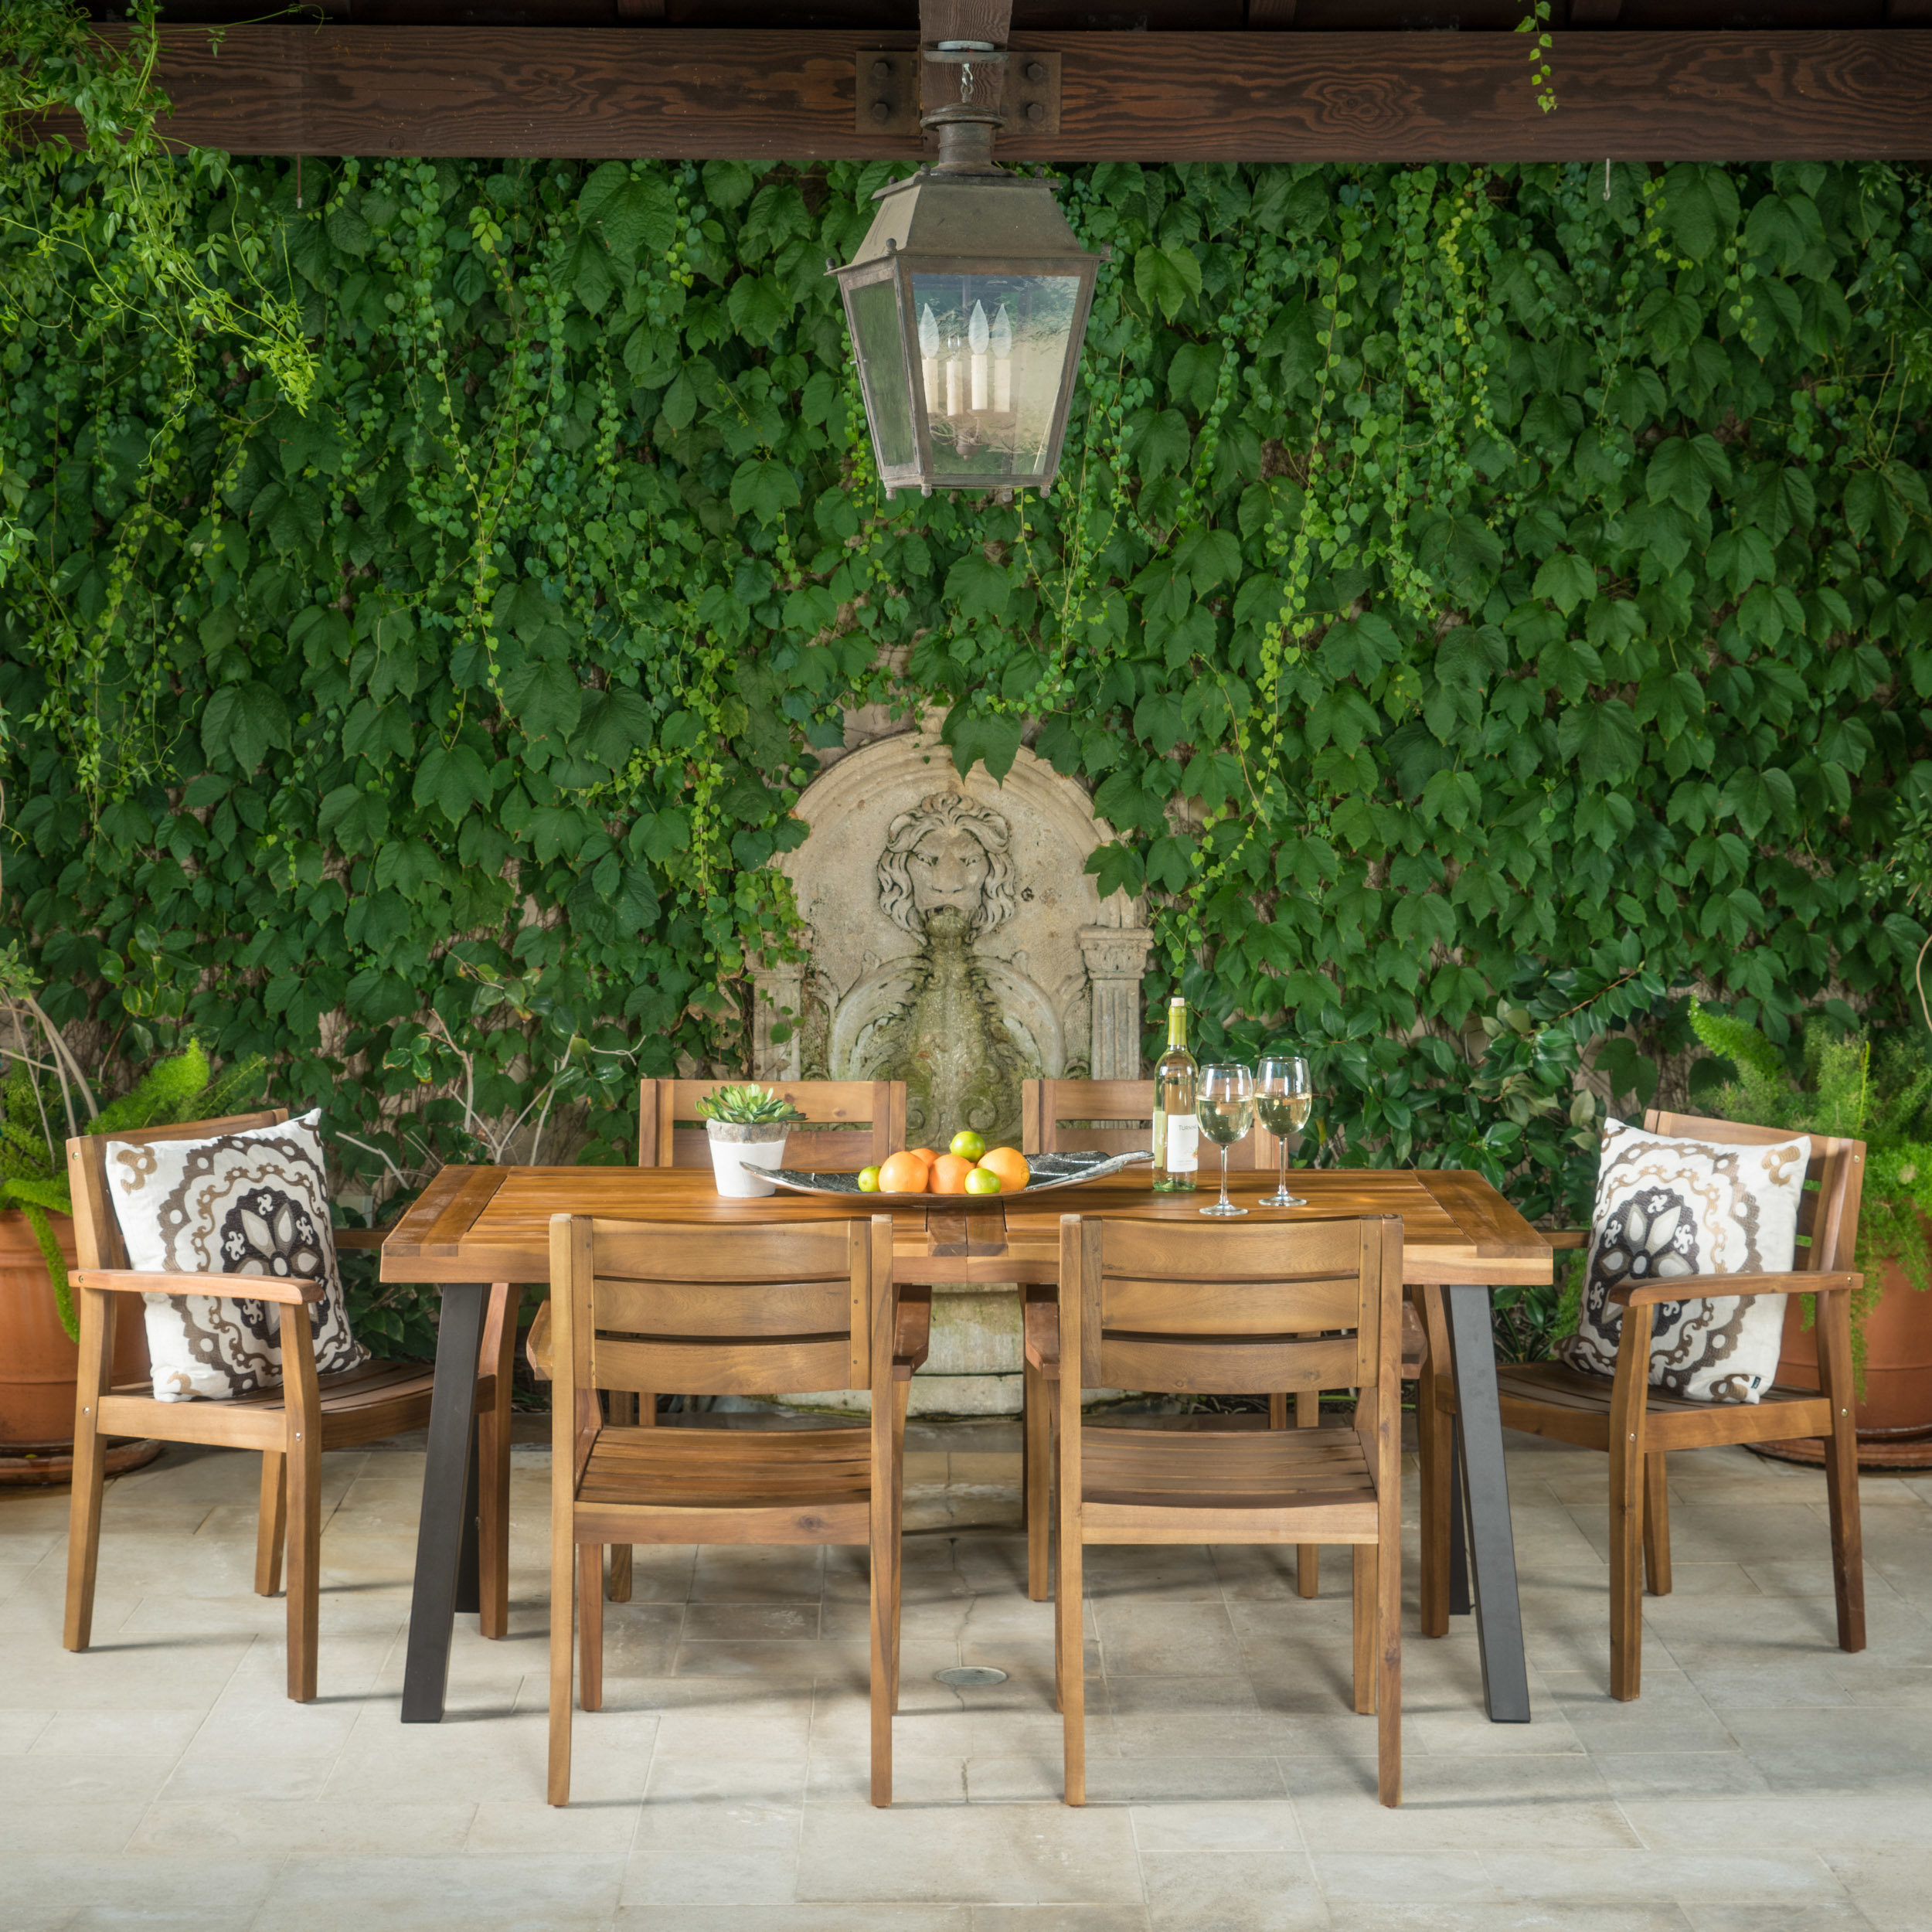 union rustic adair outdoor piece dining set reviews accent chair and table sideboard cabinet ashley furniture counter height quatrefoil side over sofa arm three nesting tables